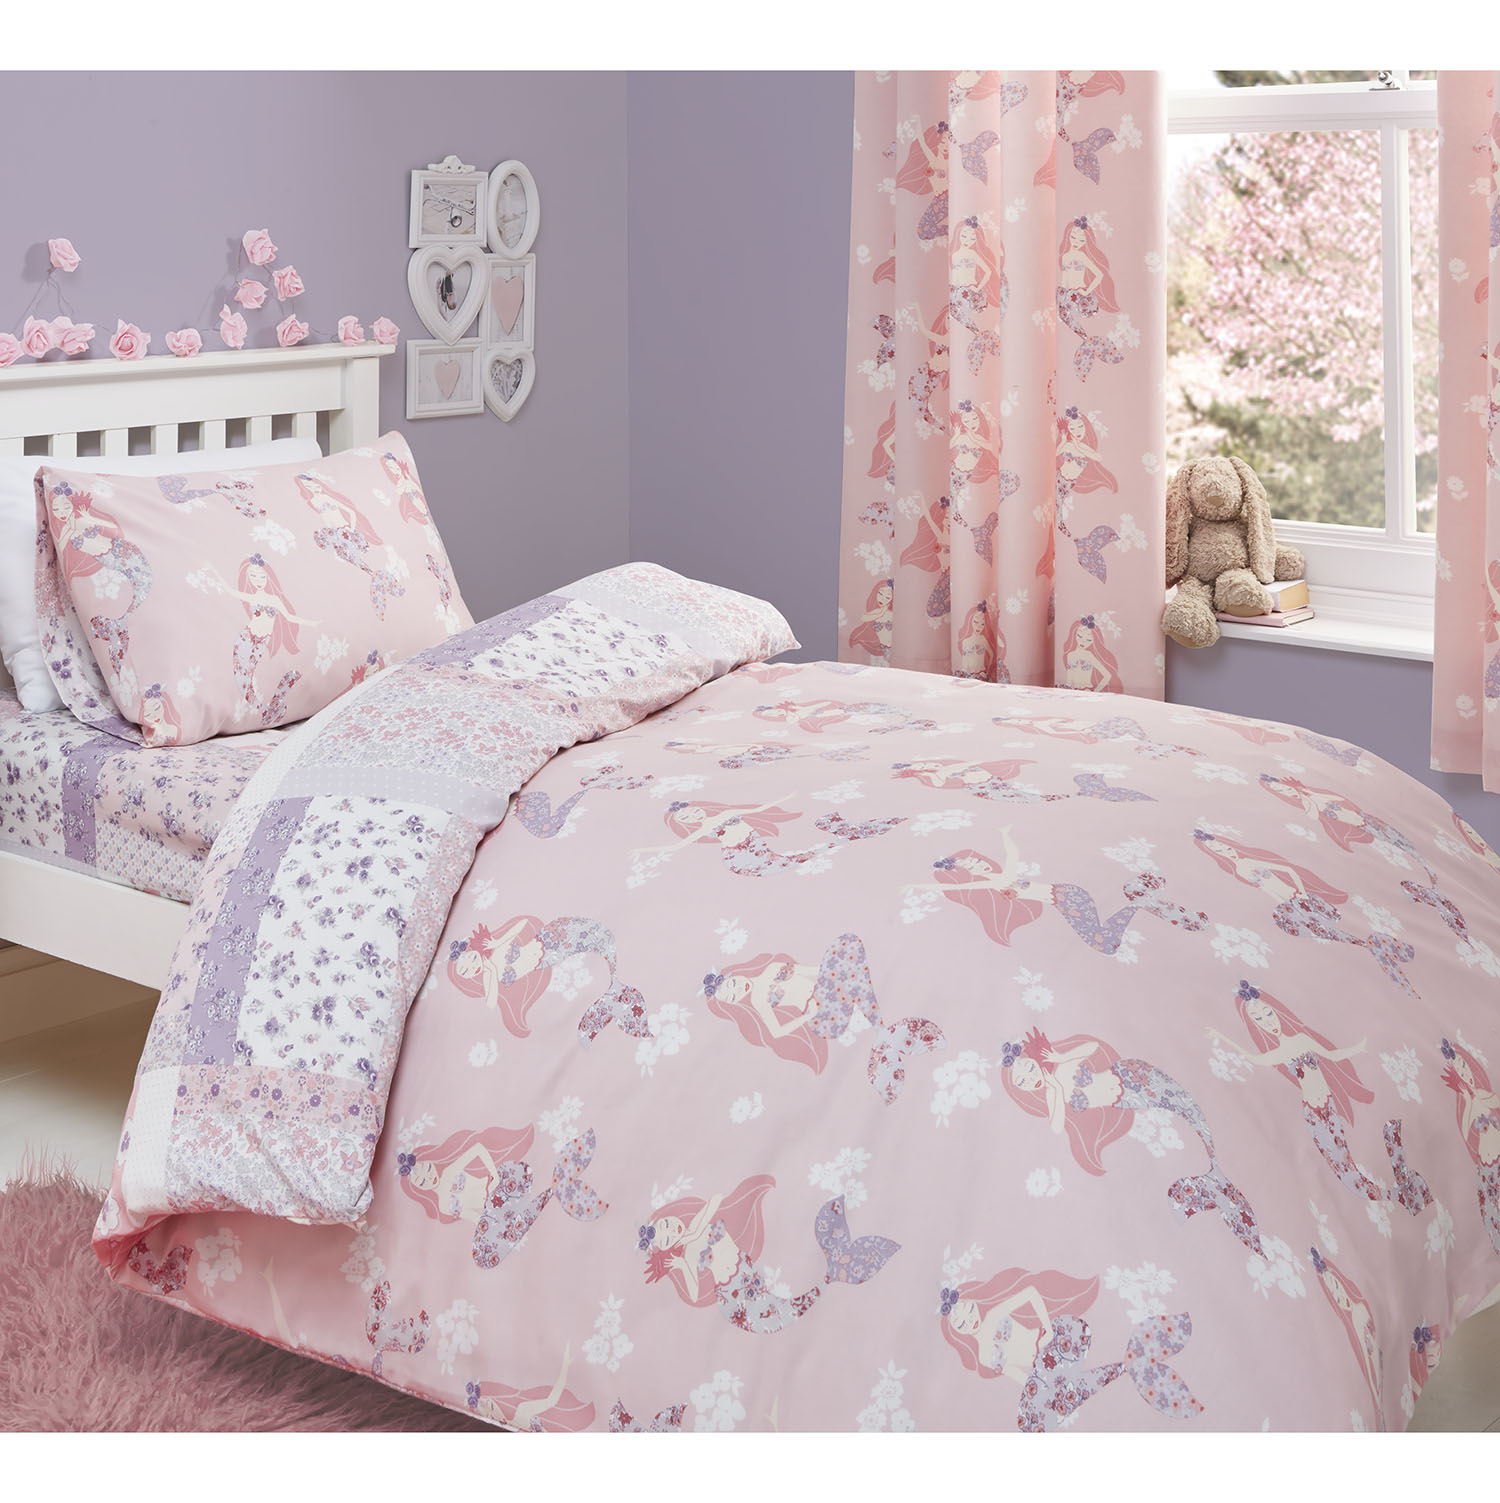 Dreams & Drapes Bedlam Mermaids Duvet Set